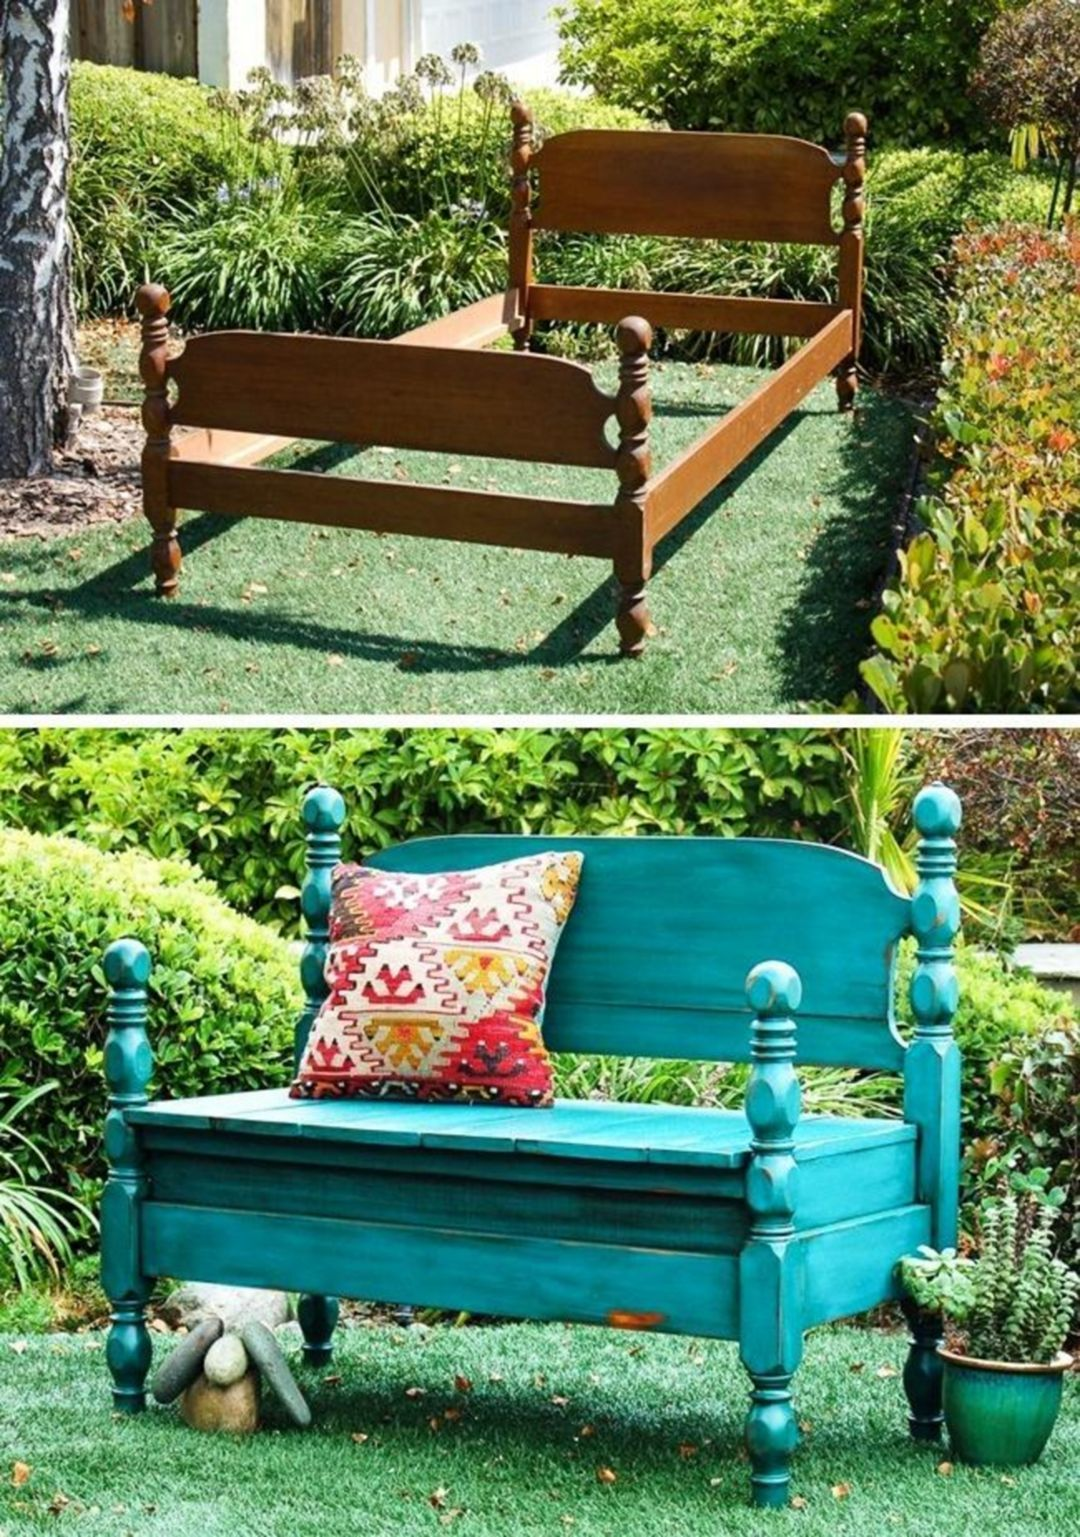 12 Creative Ideas to Change Old and Unused Items into Beautiful Furniture — Design & Decorating #oldfurniture